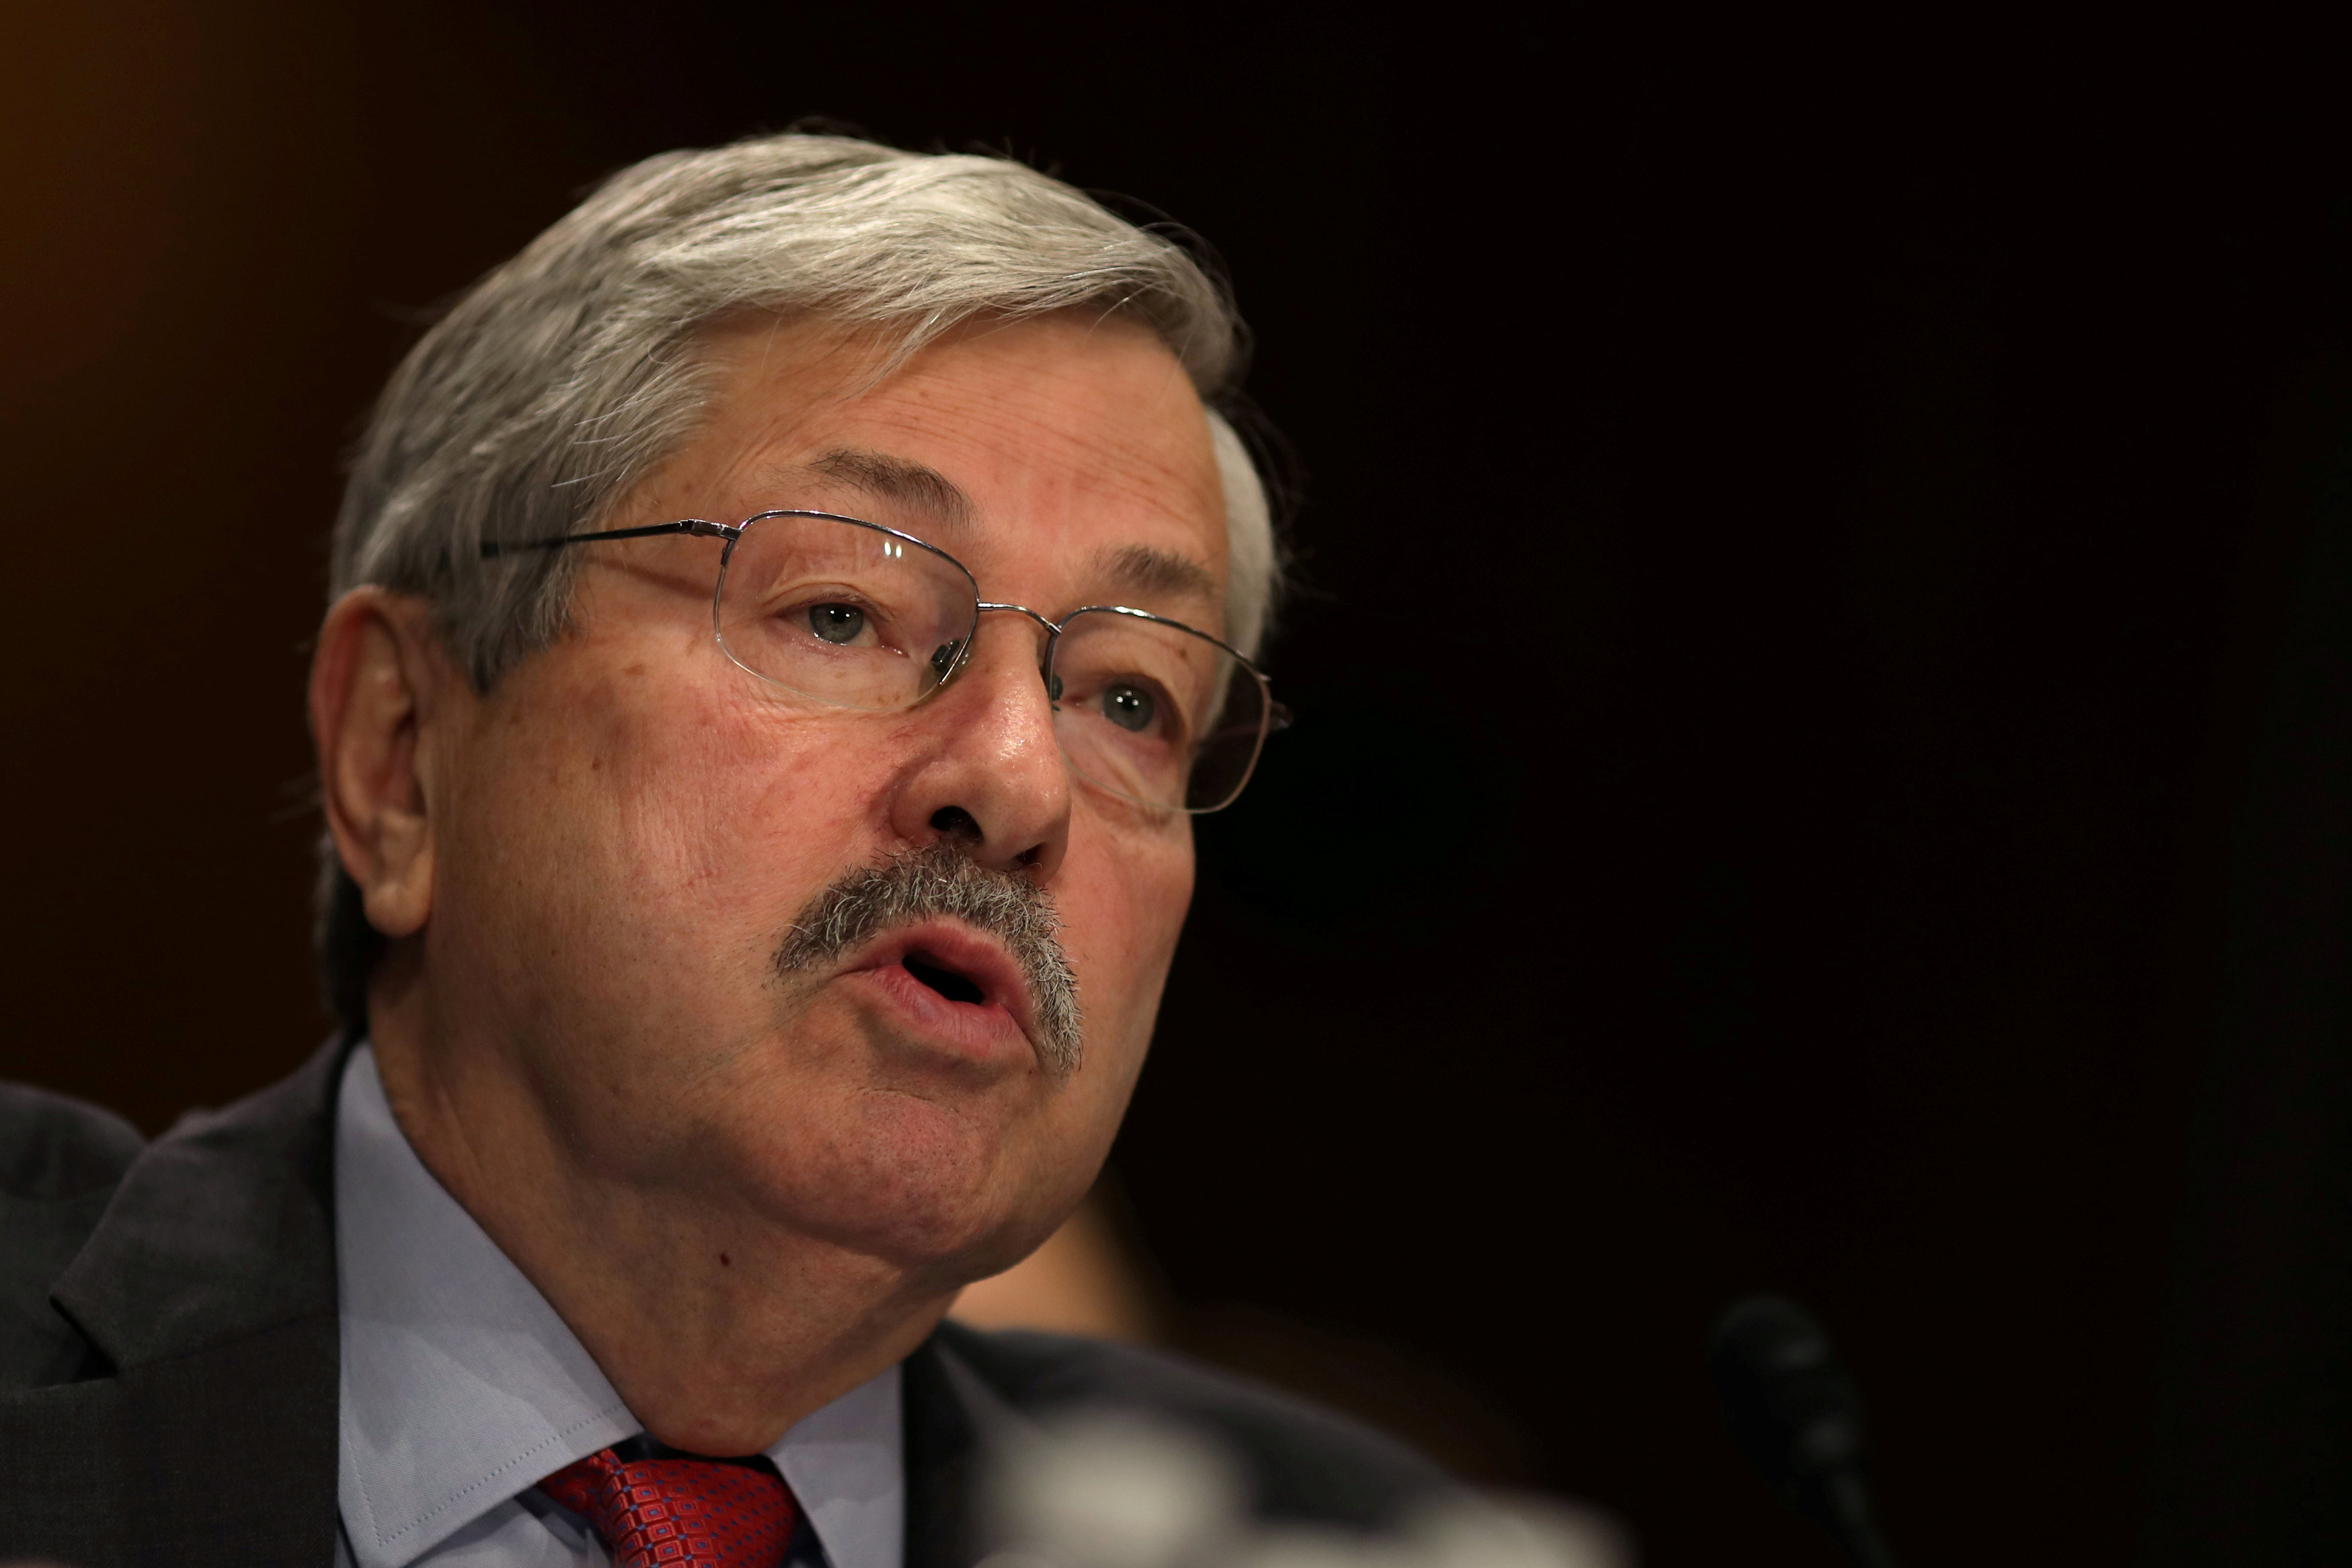 Iowa Governor Terry Branstad testifies before a Senate Foreign Relations Committee confirmation hearing on his nomination to be U.S. ambassador to China at Capitol Hill in Washington D.C., U.S. on May 2, 2017. REUTERS/Carlos Barria/File Photo